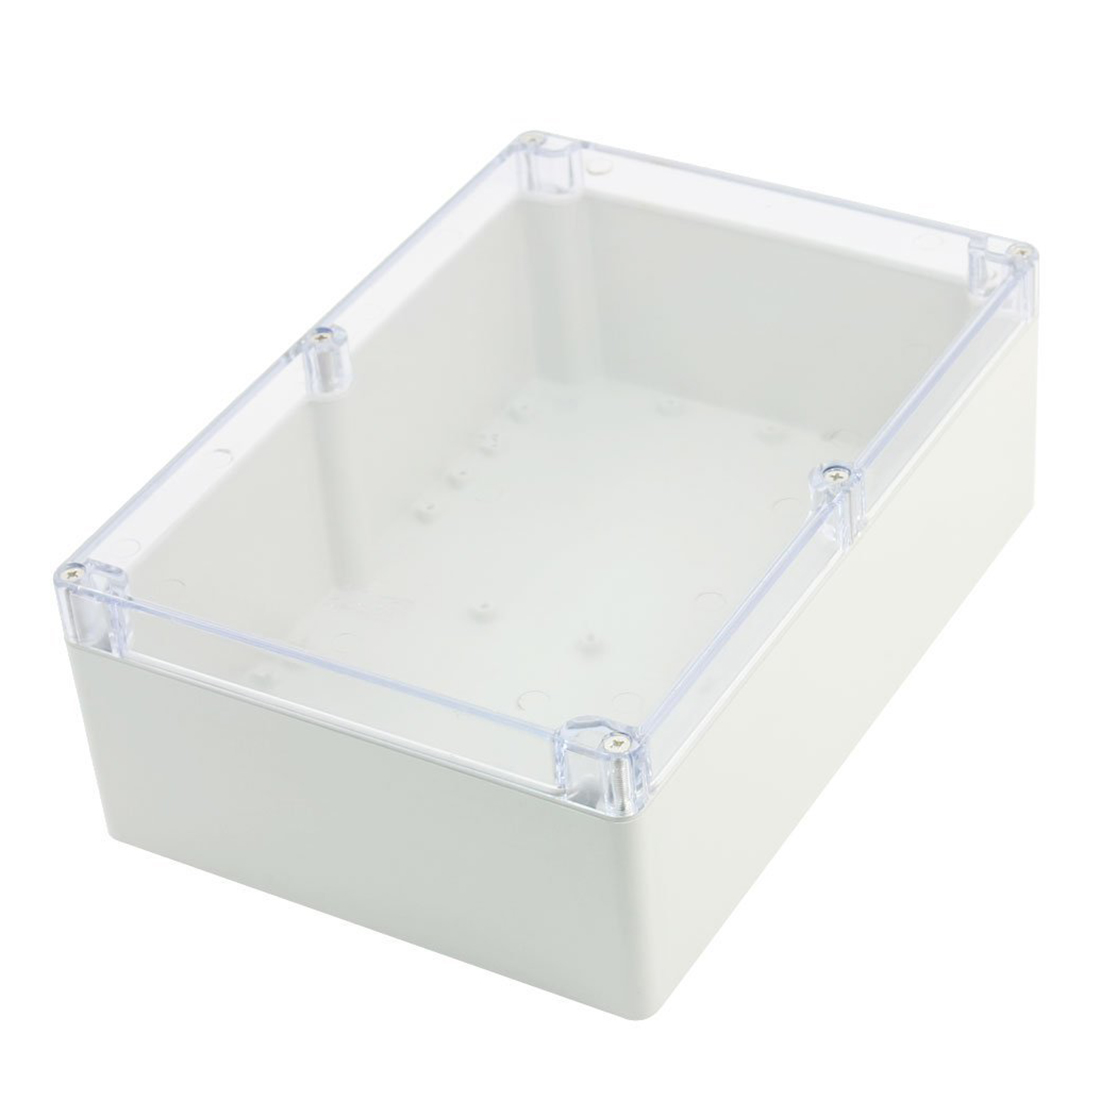 265mmx185mmx95mm Power Cable Connector Waterproof Case Junction Box 65 95 55mm waterproof case